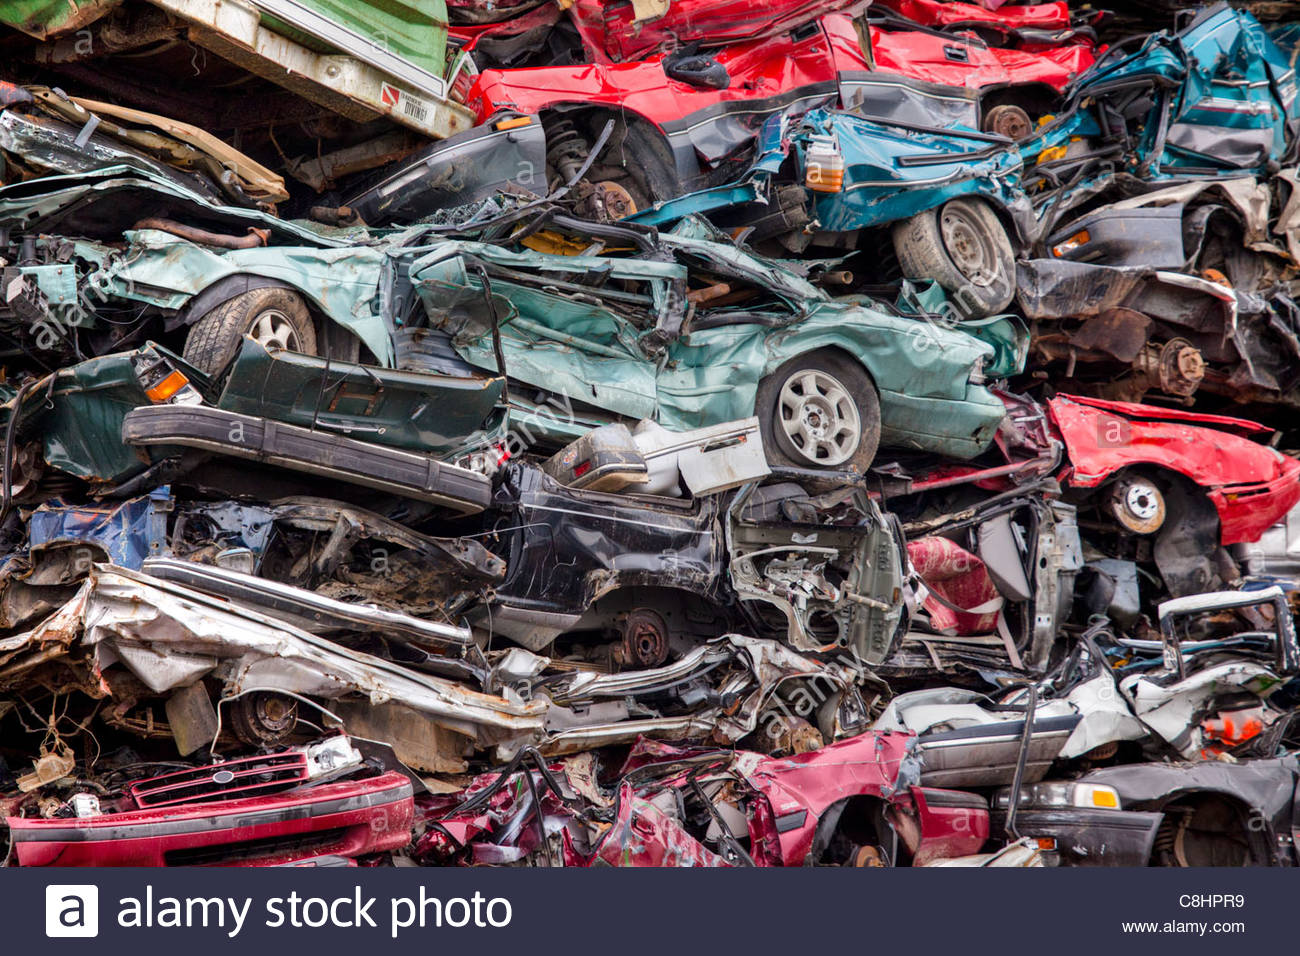 Recycling of metal-based consumer products in a scrap yard. - Stock Image